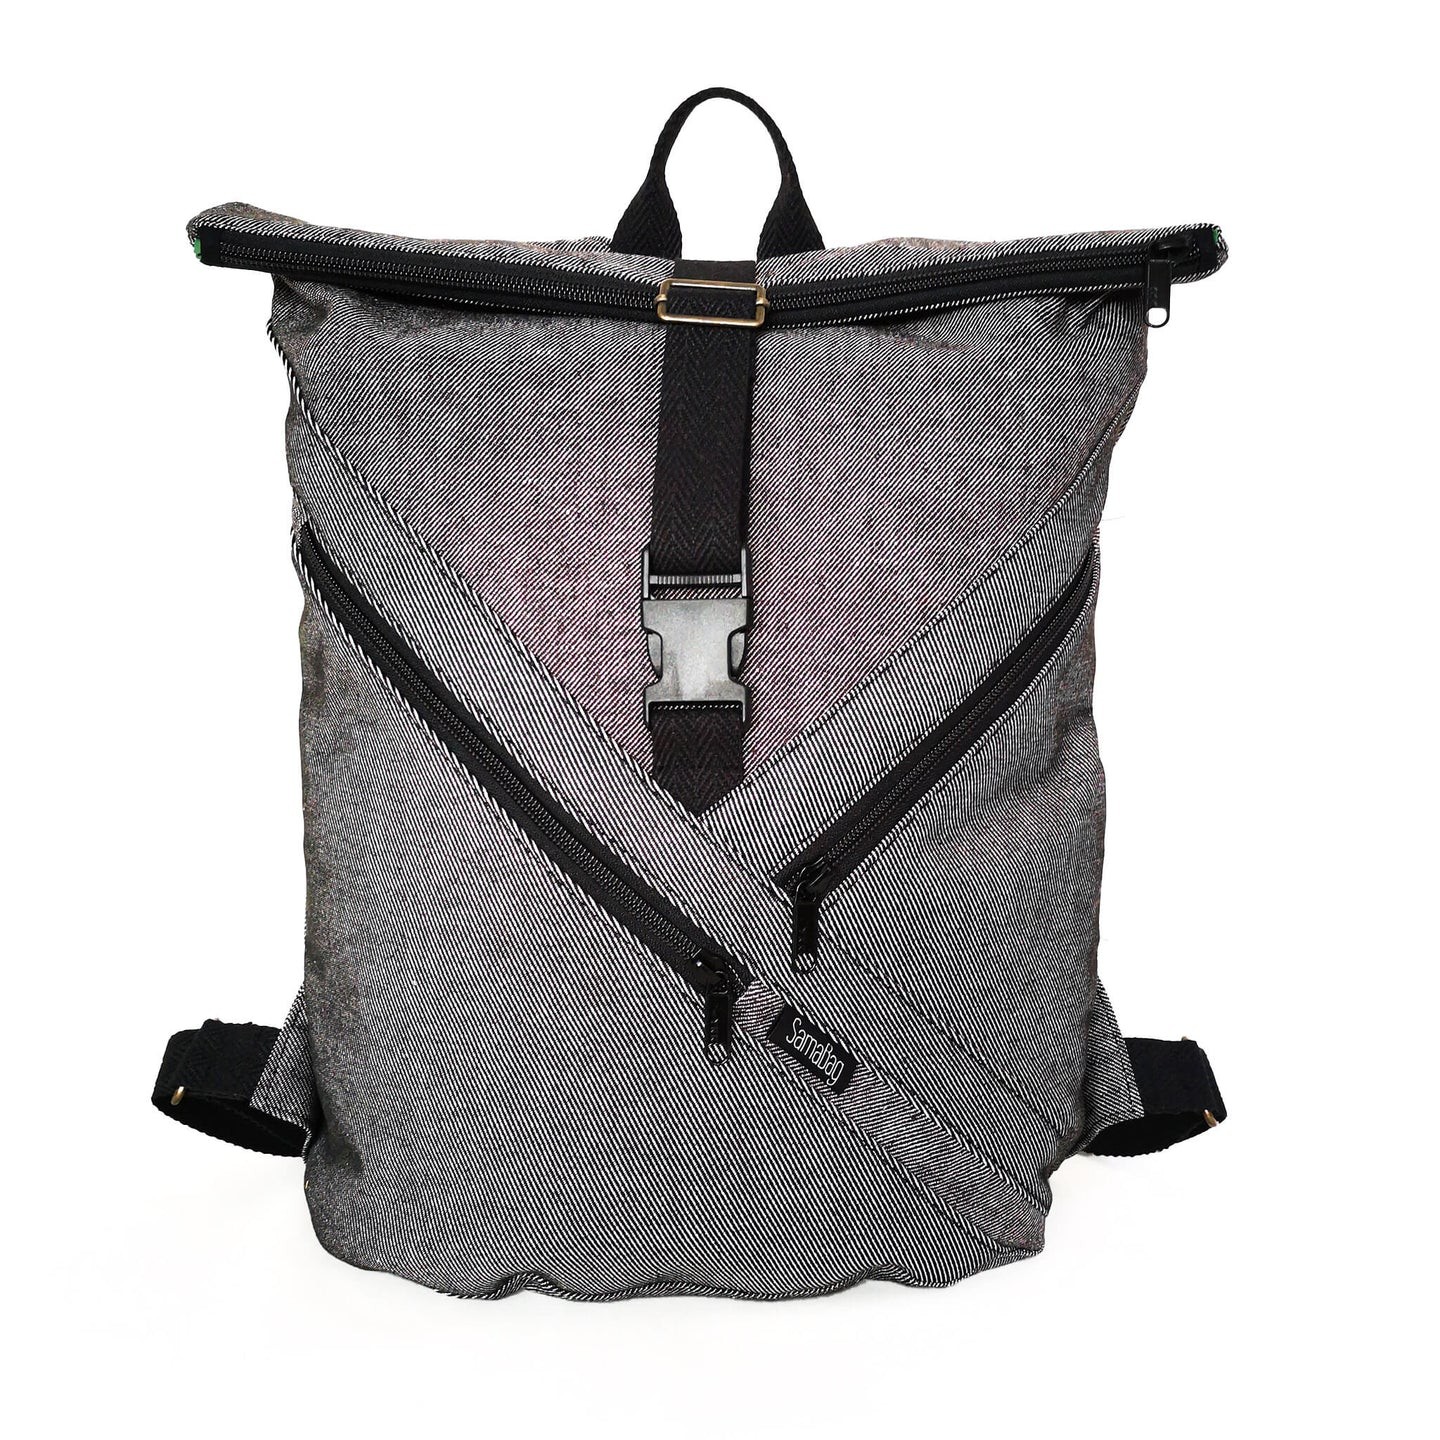 DryBag lino denim